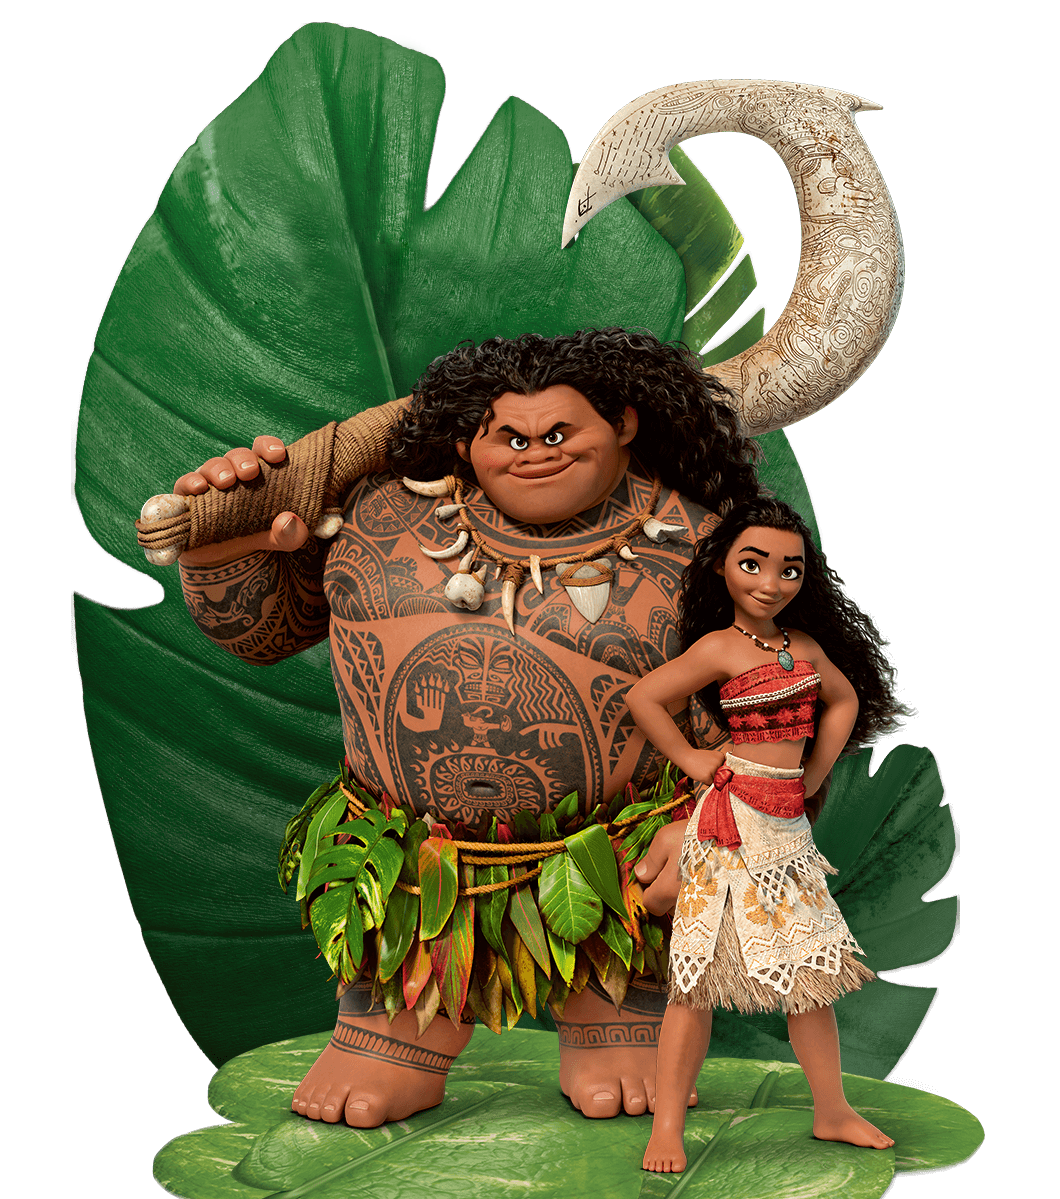 Moana E Maui Transparent Png 46110 Free Icons And Png